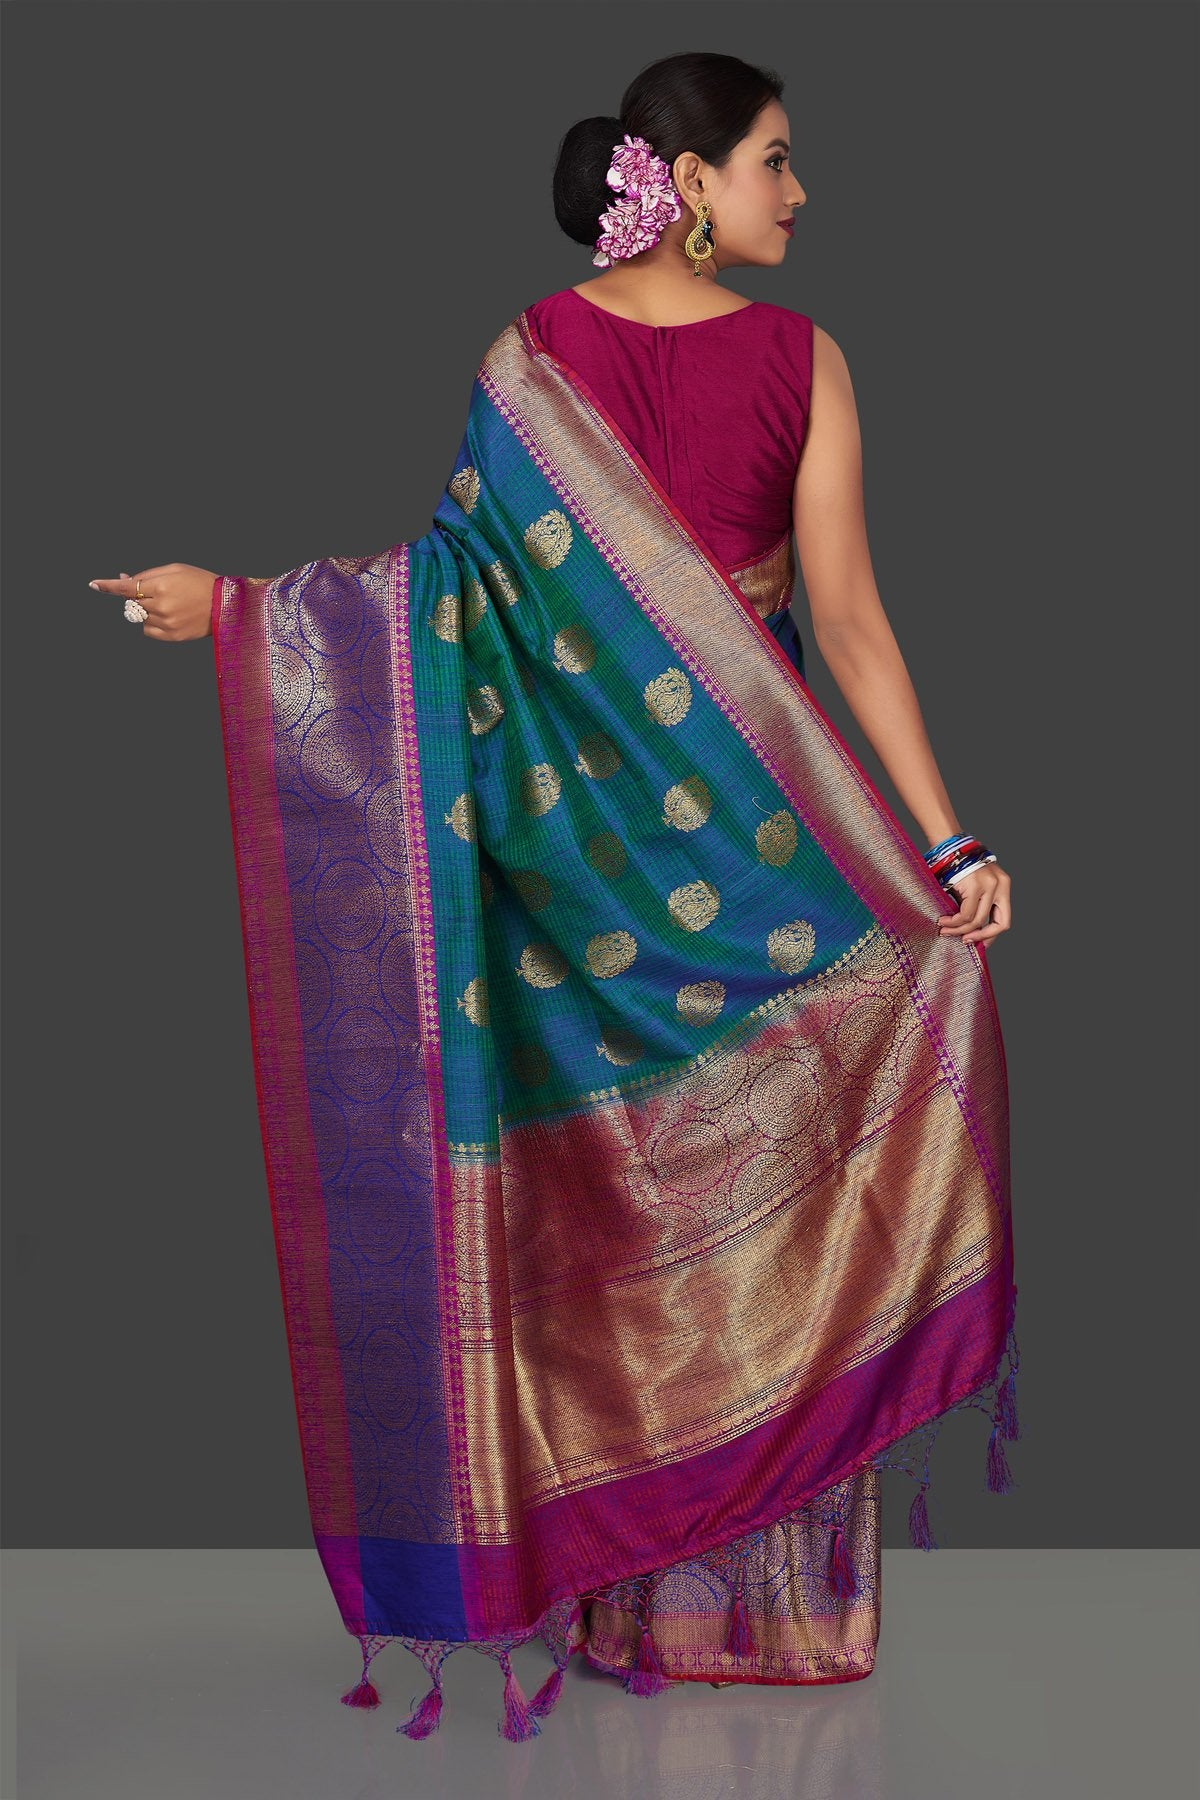 Buy stunning greenish blue tassar Banarasi sari online in USA with antique zari purple and blue border and zari buta. Garner compliments on weddings and special occasions with exquisite Banarasi saris, handwoven silk sarees, tussar sarees from Pure Elegance Indian fashion store in USA.-back